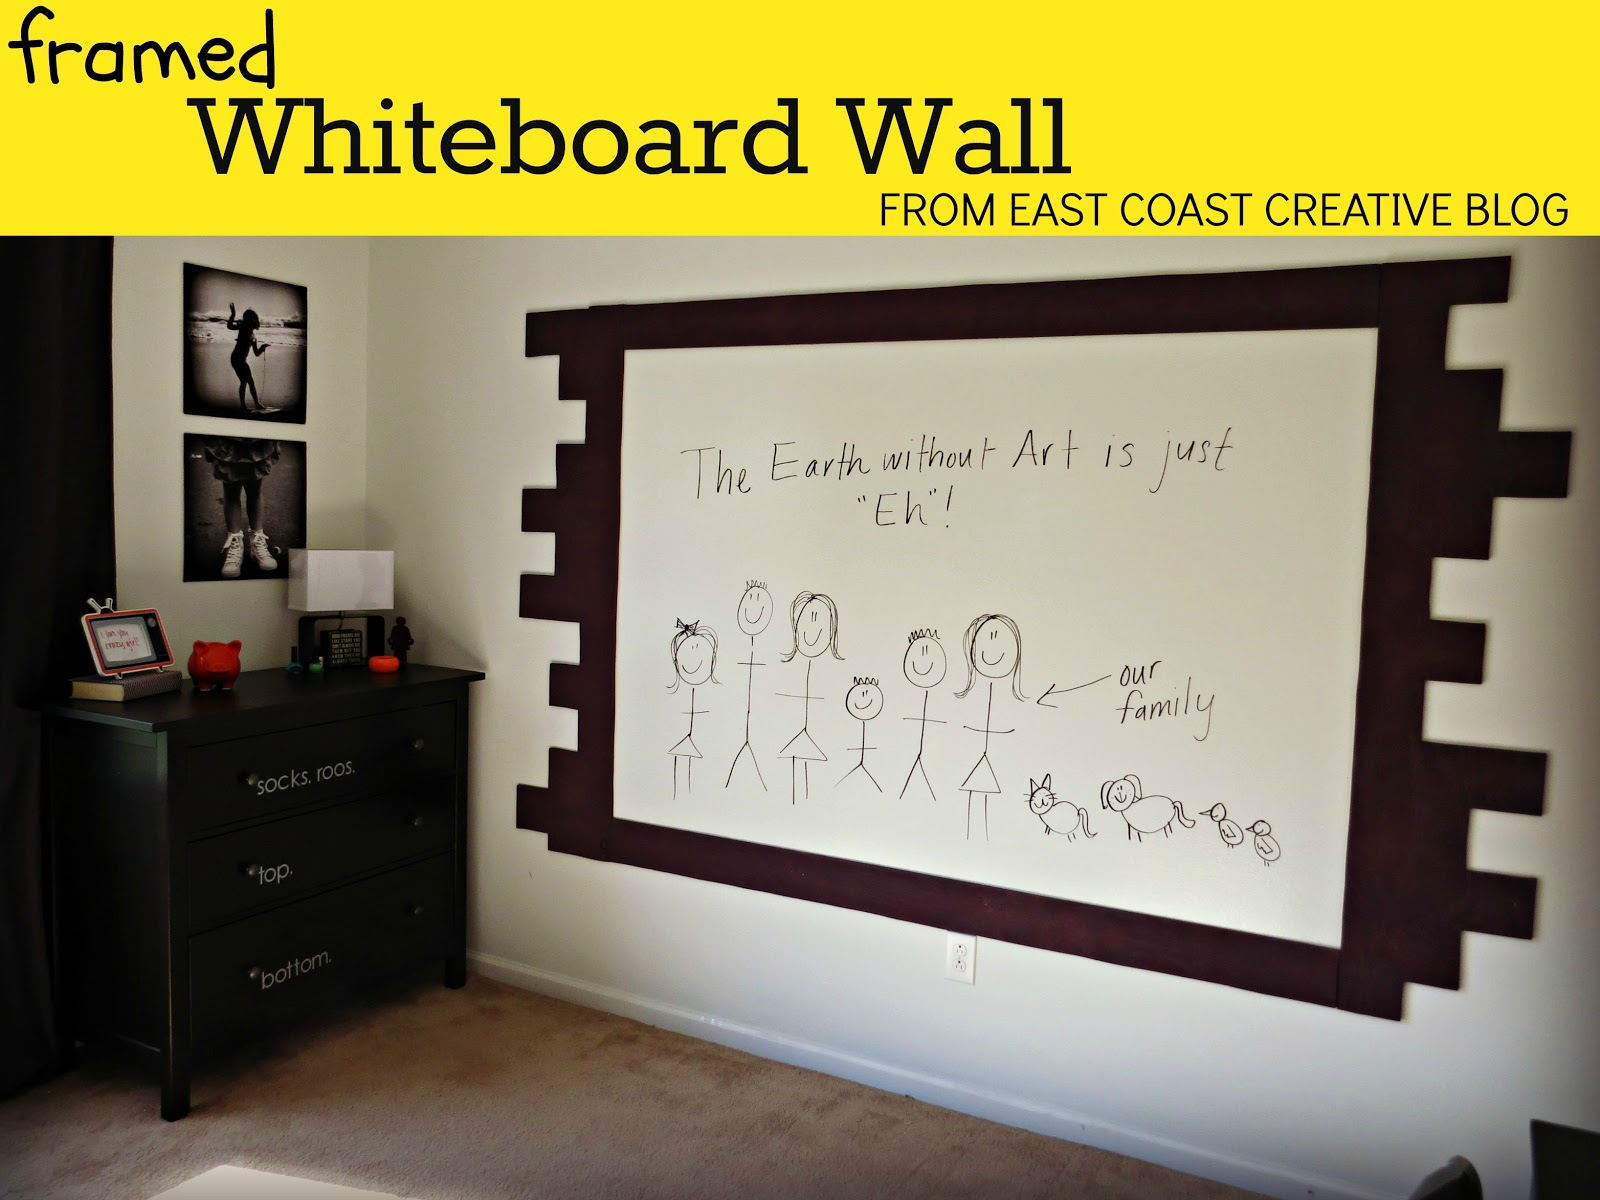 dry erase wall paint heart wall how to paint whiteboard wall